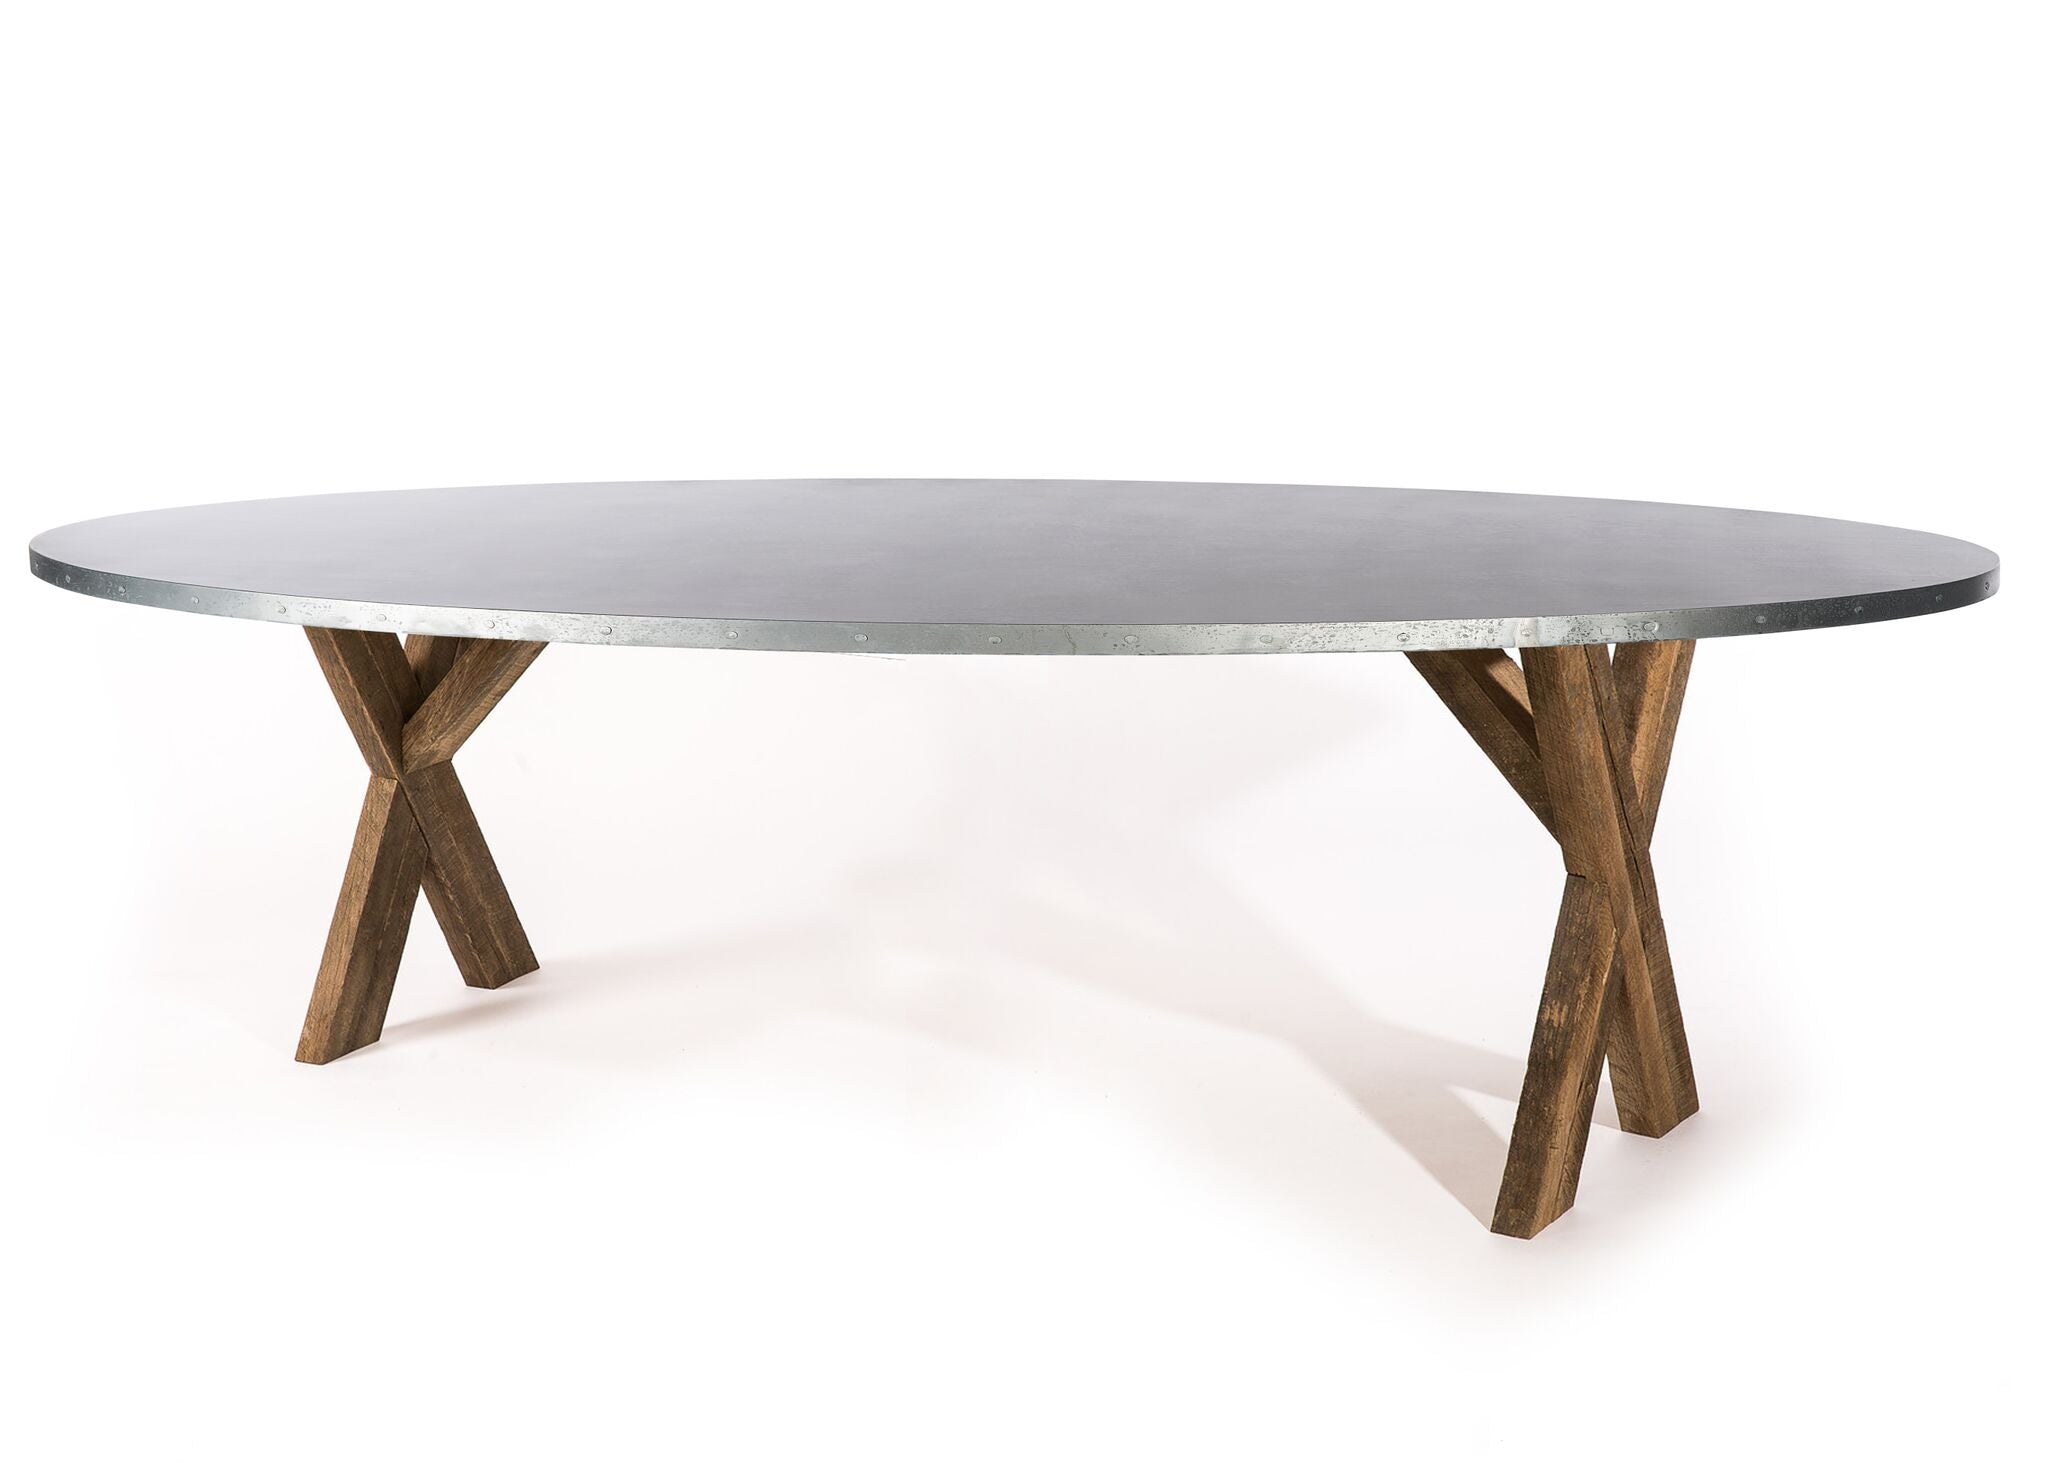 "Zinc Oval Tables | X Base Trestle Table | CLASSIC | Natural Reclaimed Oak | CUSTOM SIZE 60""L 37""W 30""H 